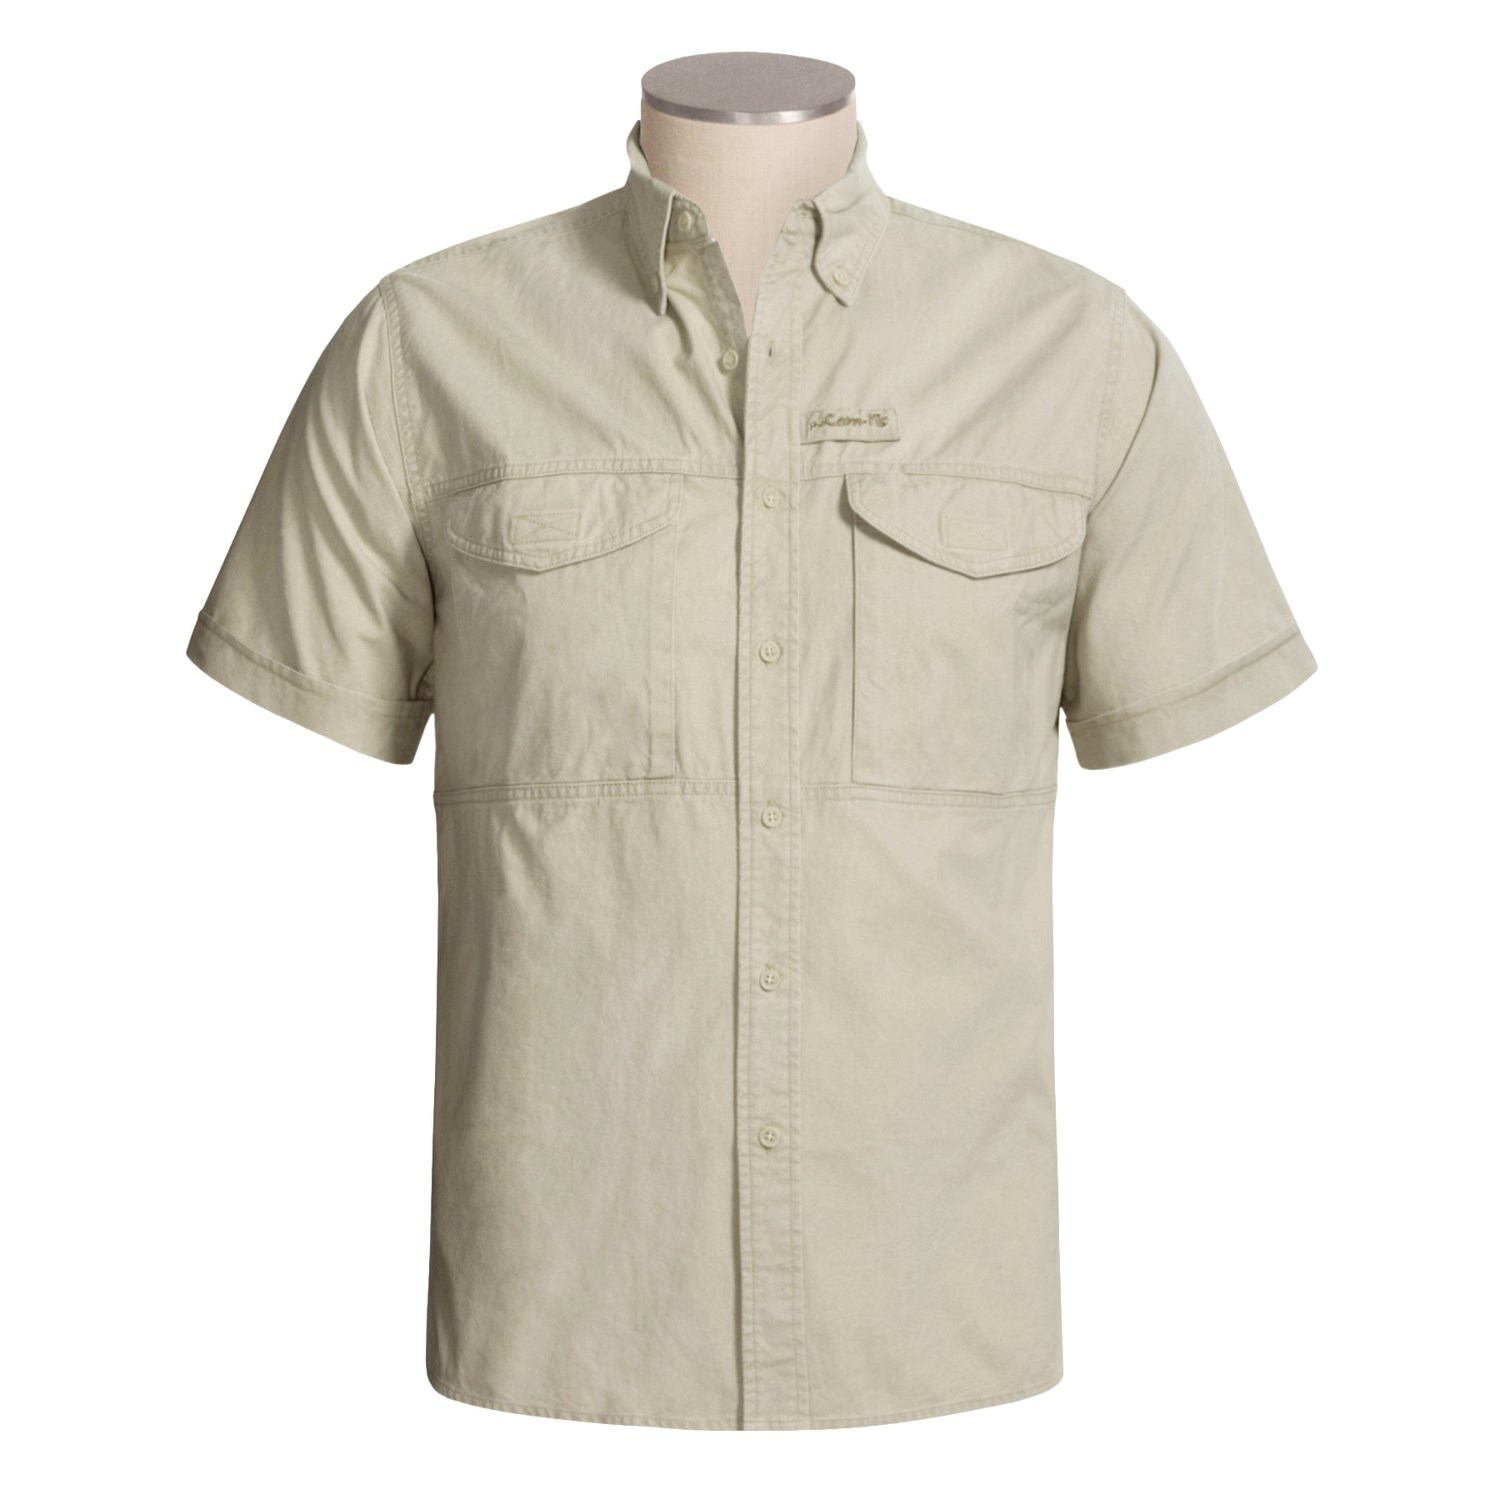 Pro Cam Fis Indian River Fishing Shirt For Men 2179w